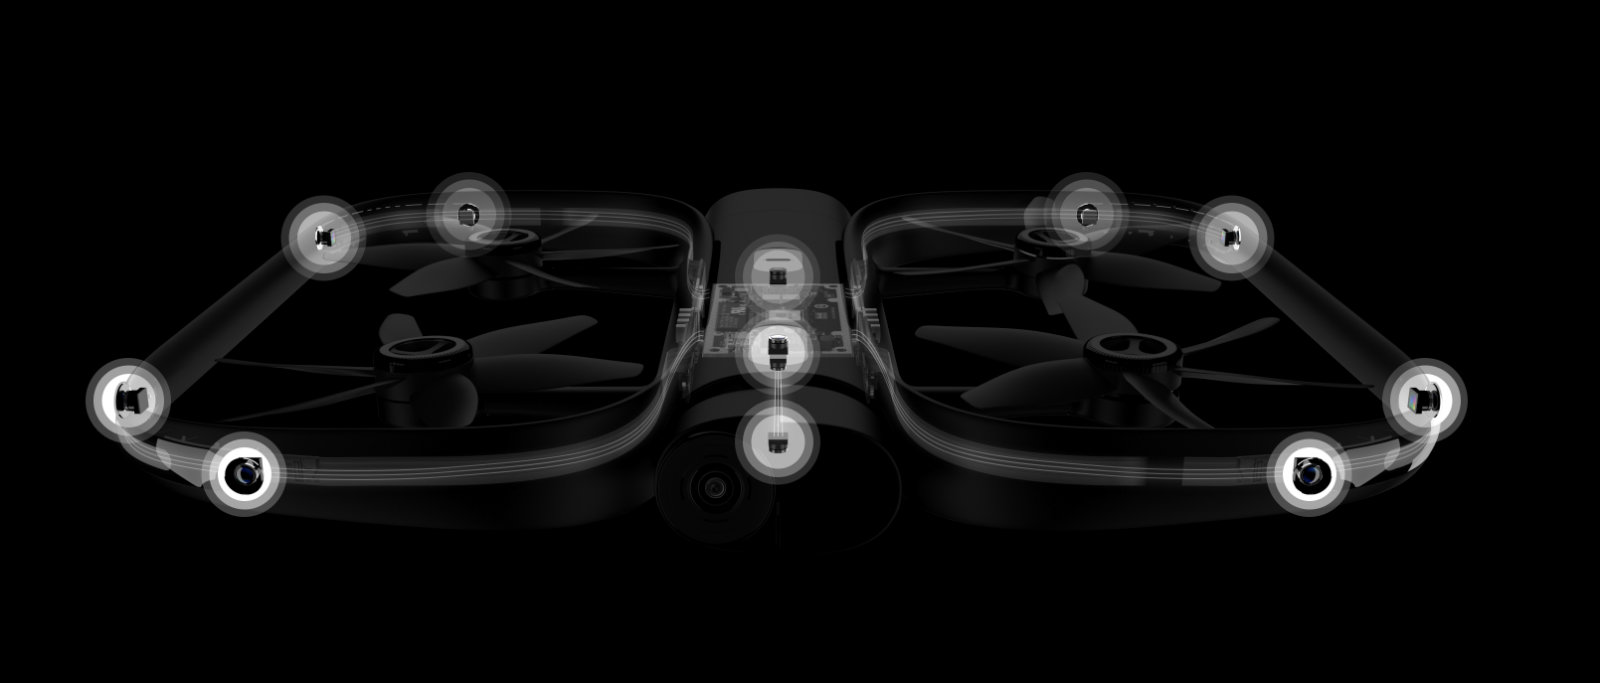 The Skydio R1 might be the smartest consumer drone in the sky